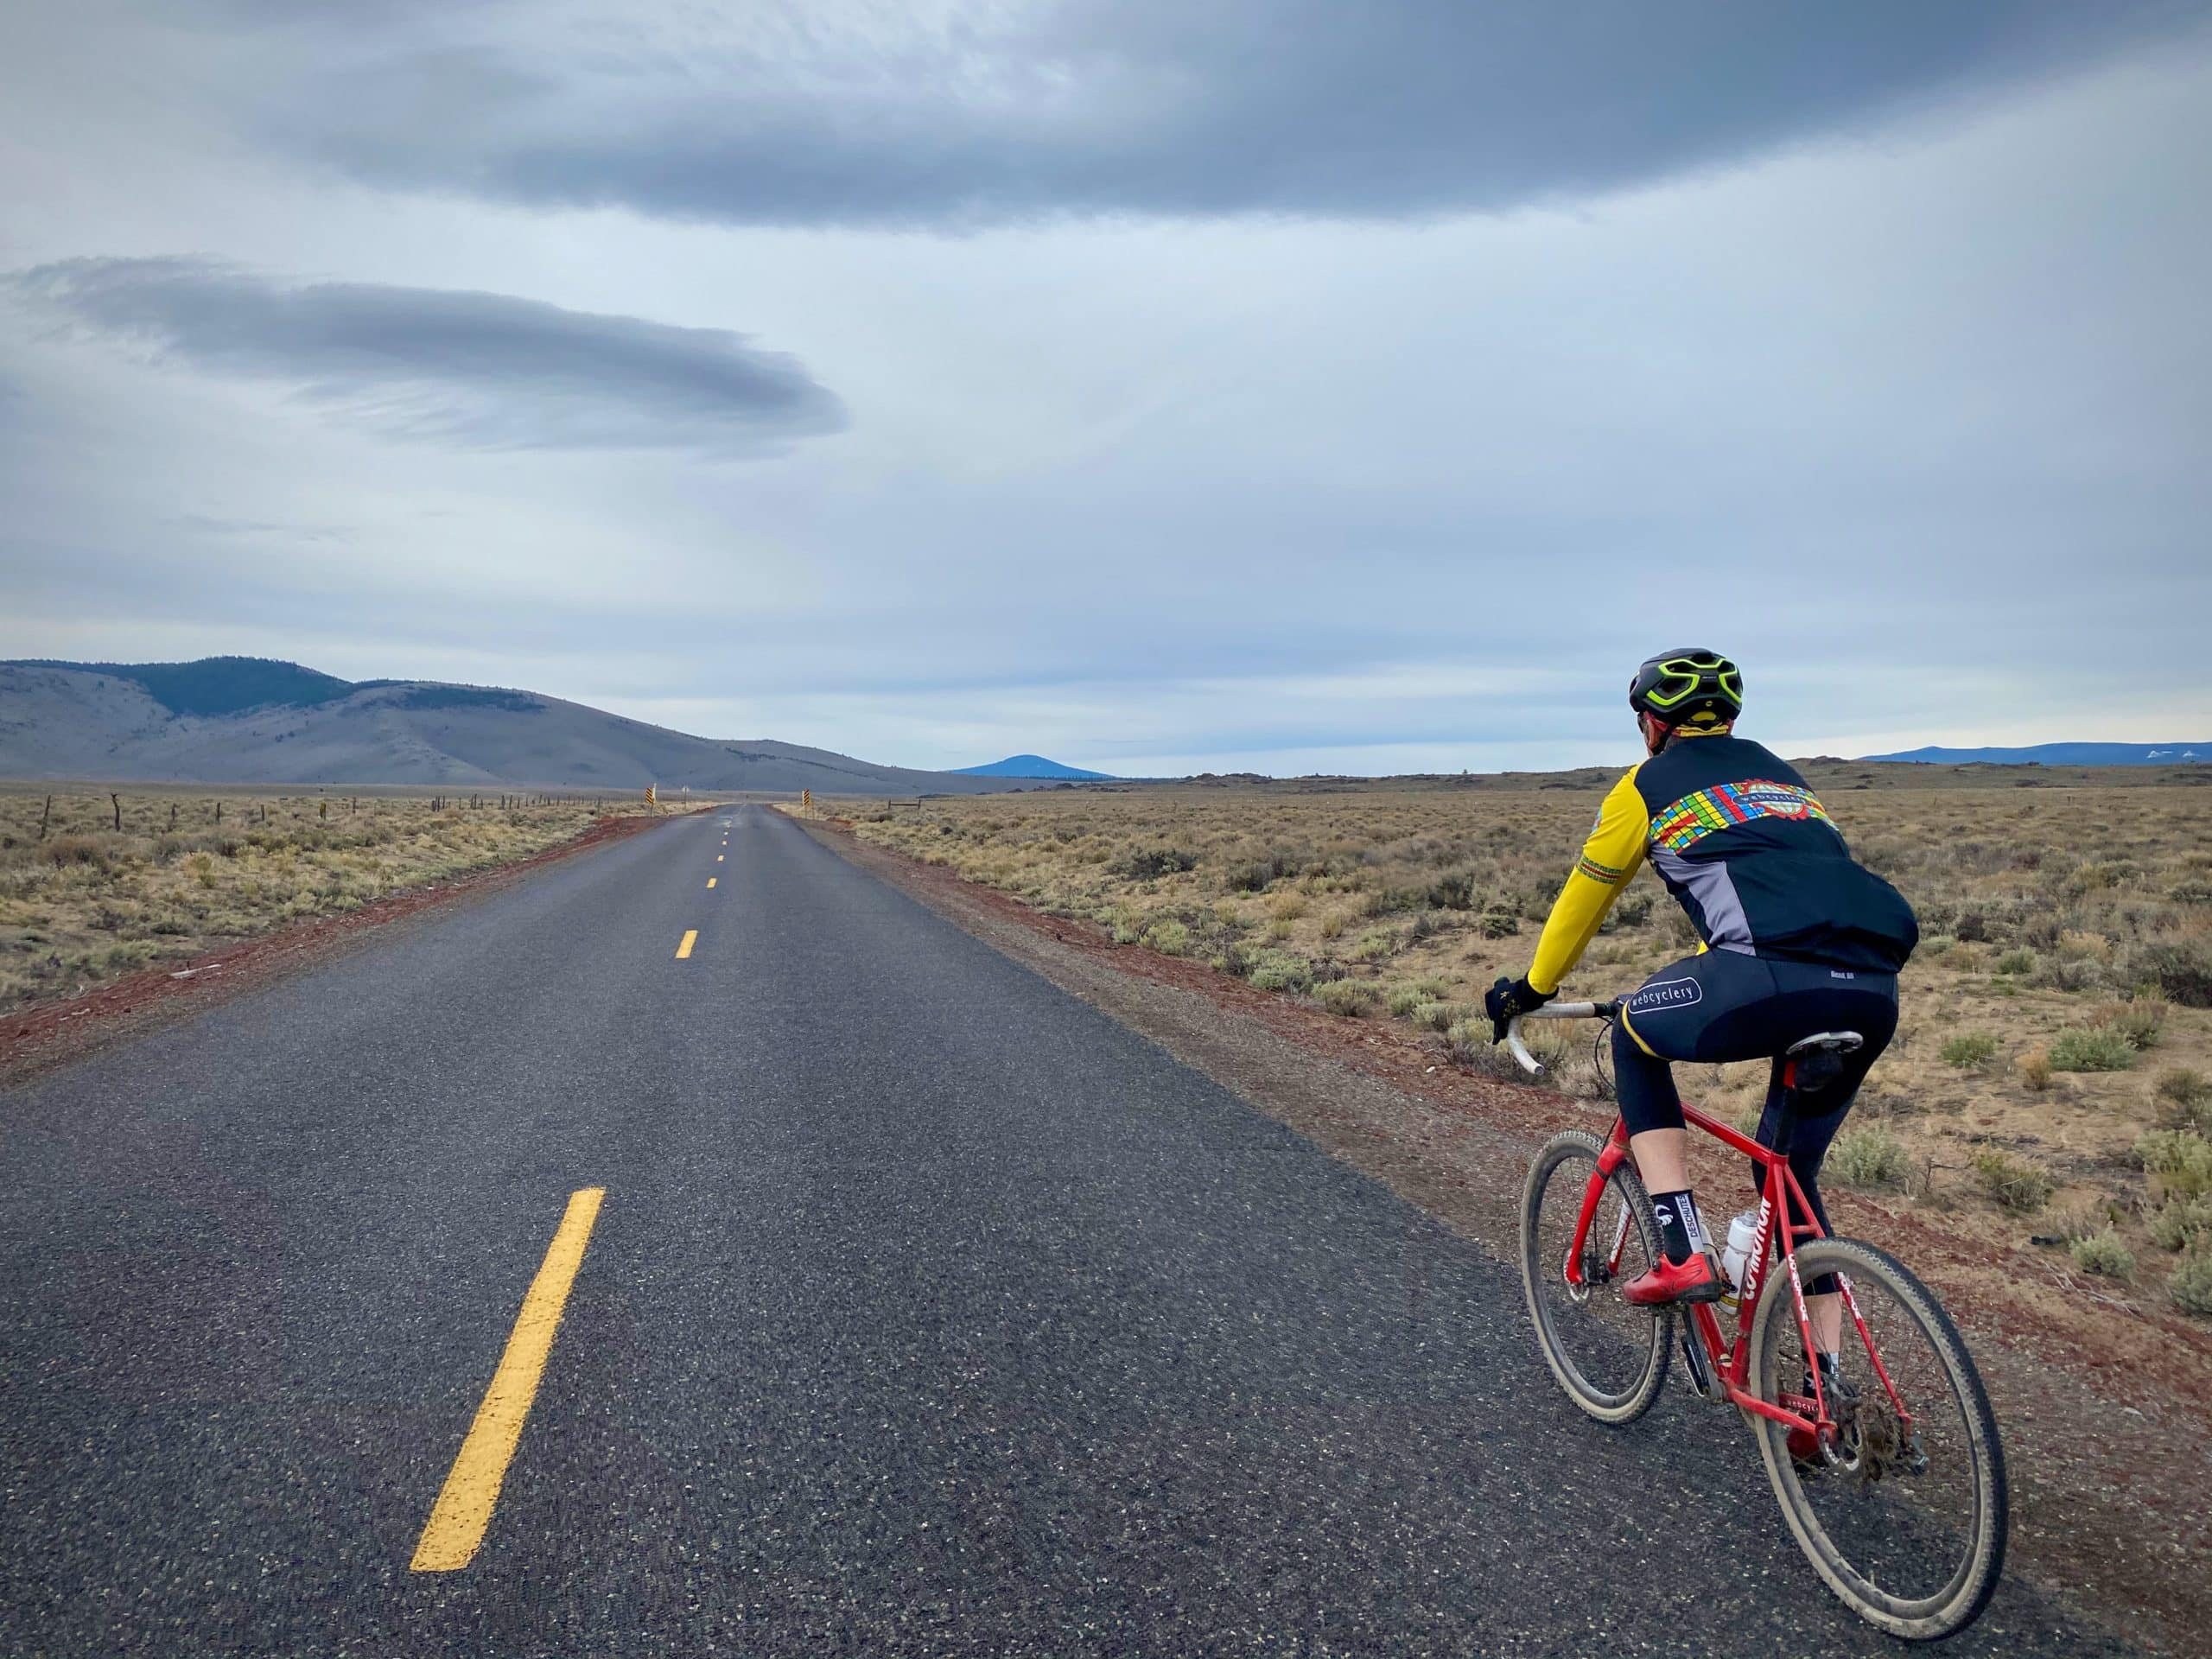 Cyclist on paved road in the Millican Valley near Bend, Oregon.